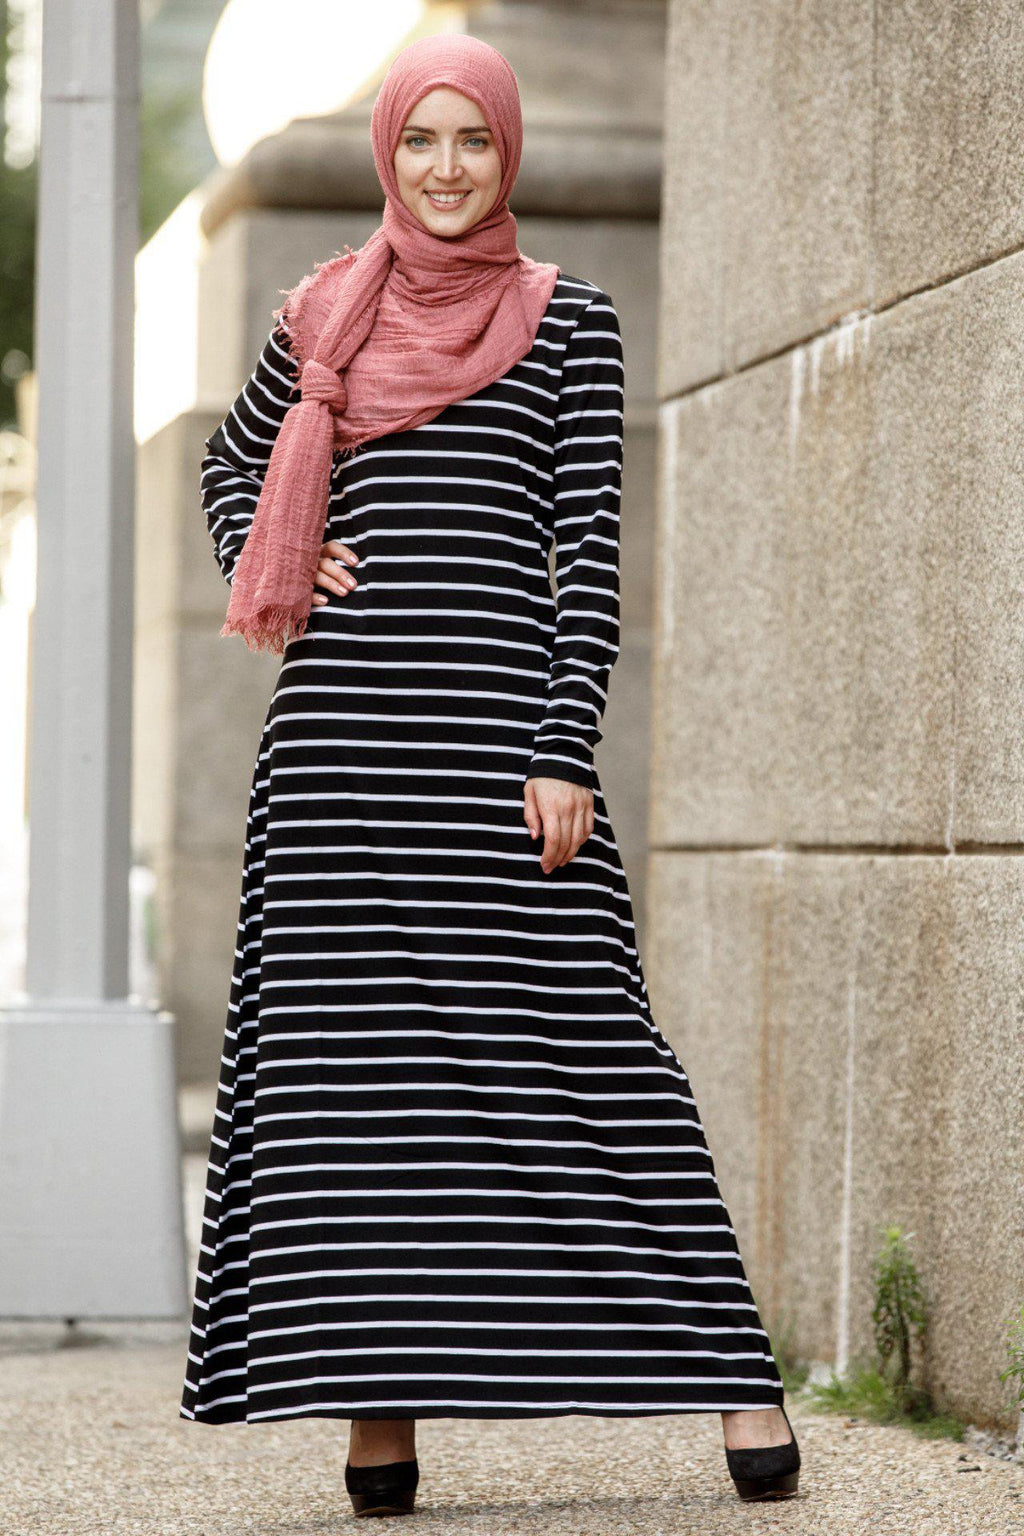 Striped Long Sleeve Maxi Dress - PREORDER - Abaya, Hijabs, Jilbabs, on sale now at UrbanModesty.com